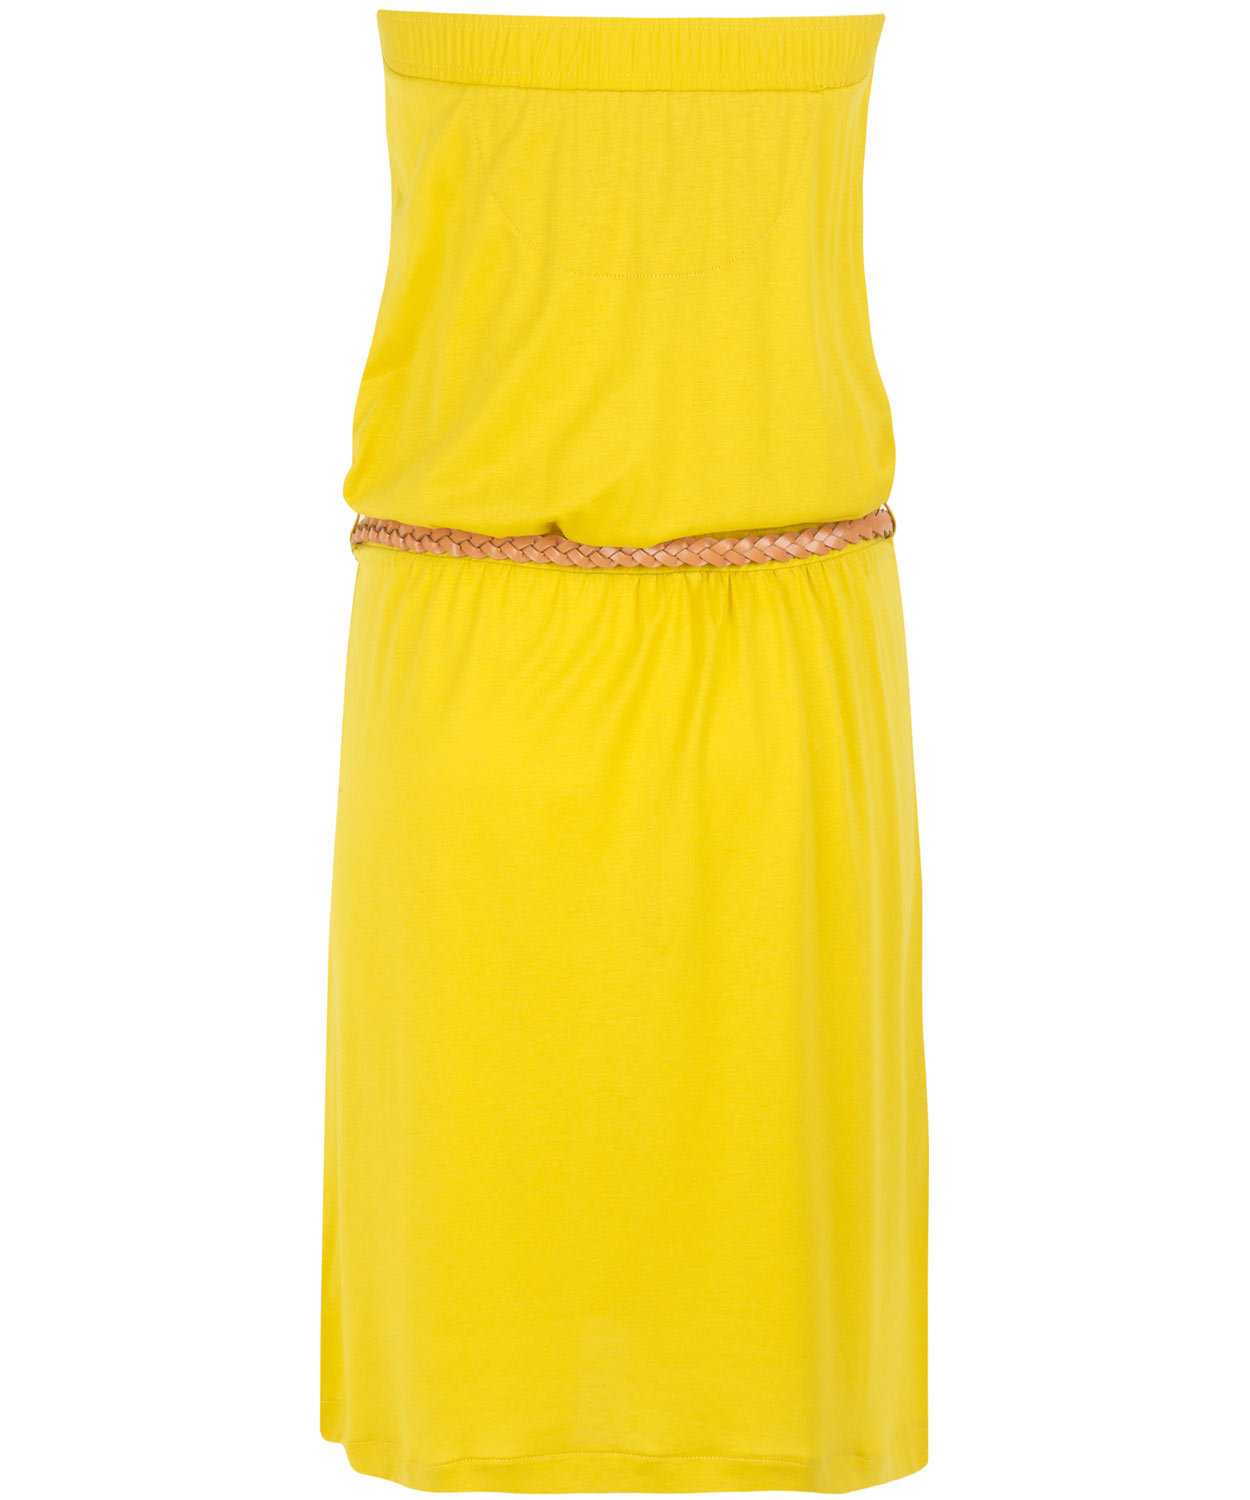 Lyst Sessun Yellow Strapless Jersey Dress In Yellow